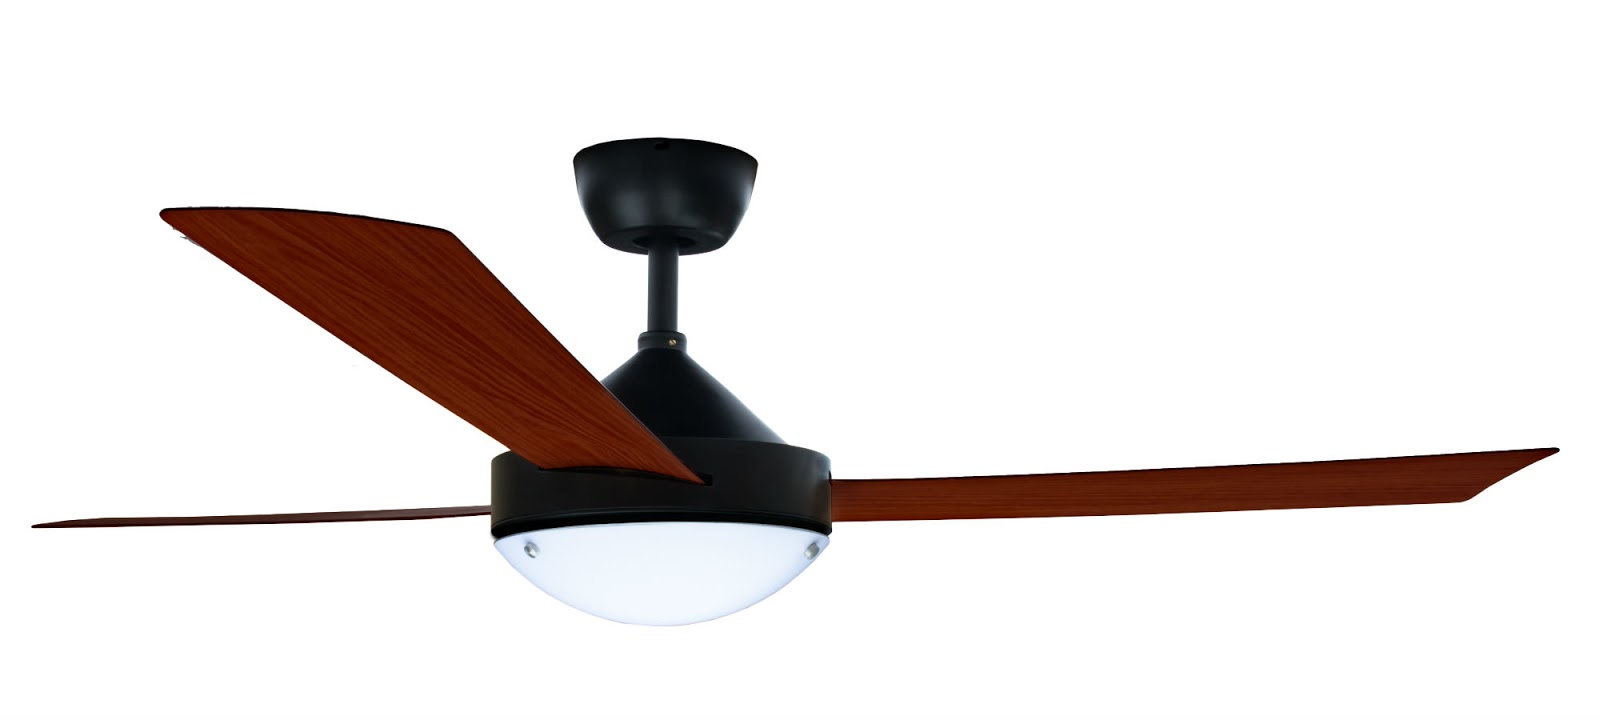 Shop ceiling fans online to get better looking ones at good price the fans with time and that is why they are still very high in use and the new ones like ceiling fan with led light are here for the taking as well aloadofball Gallery